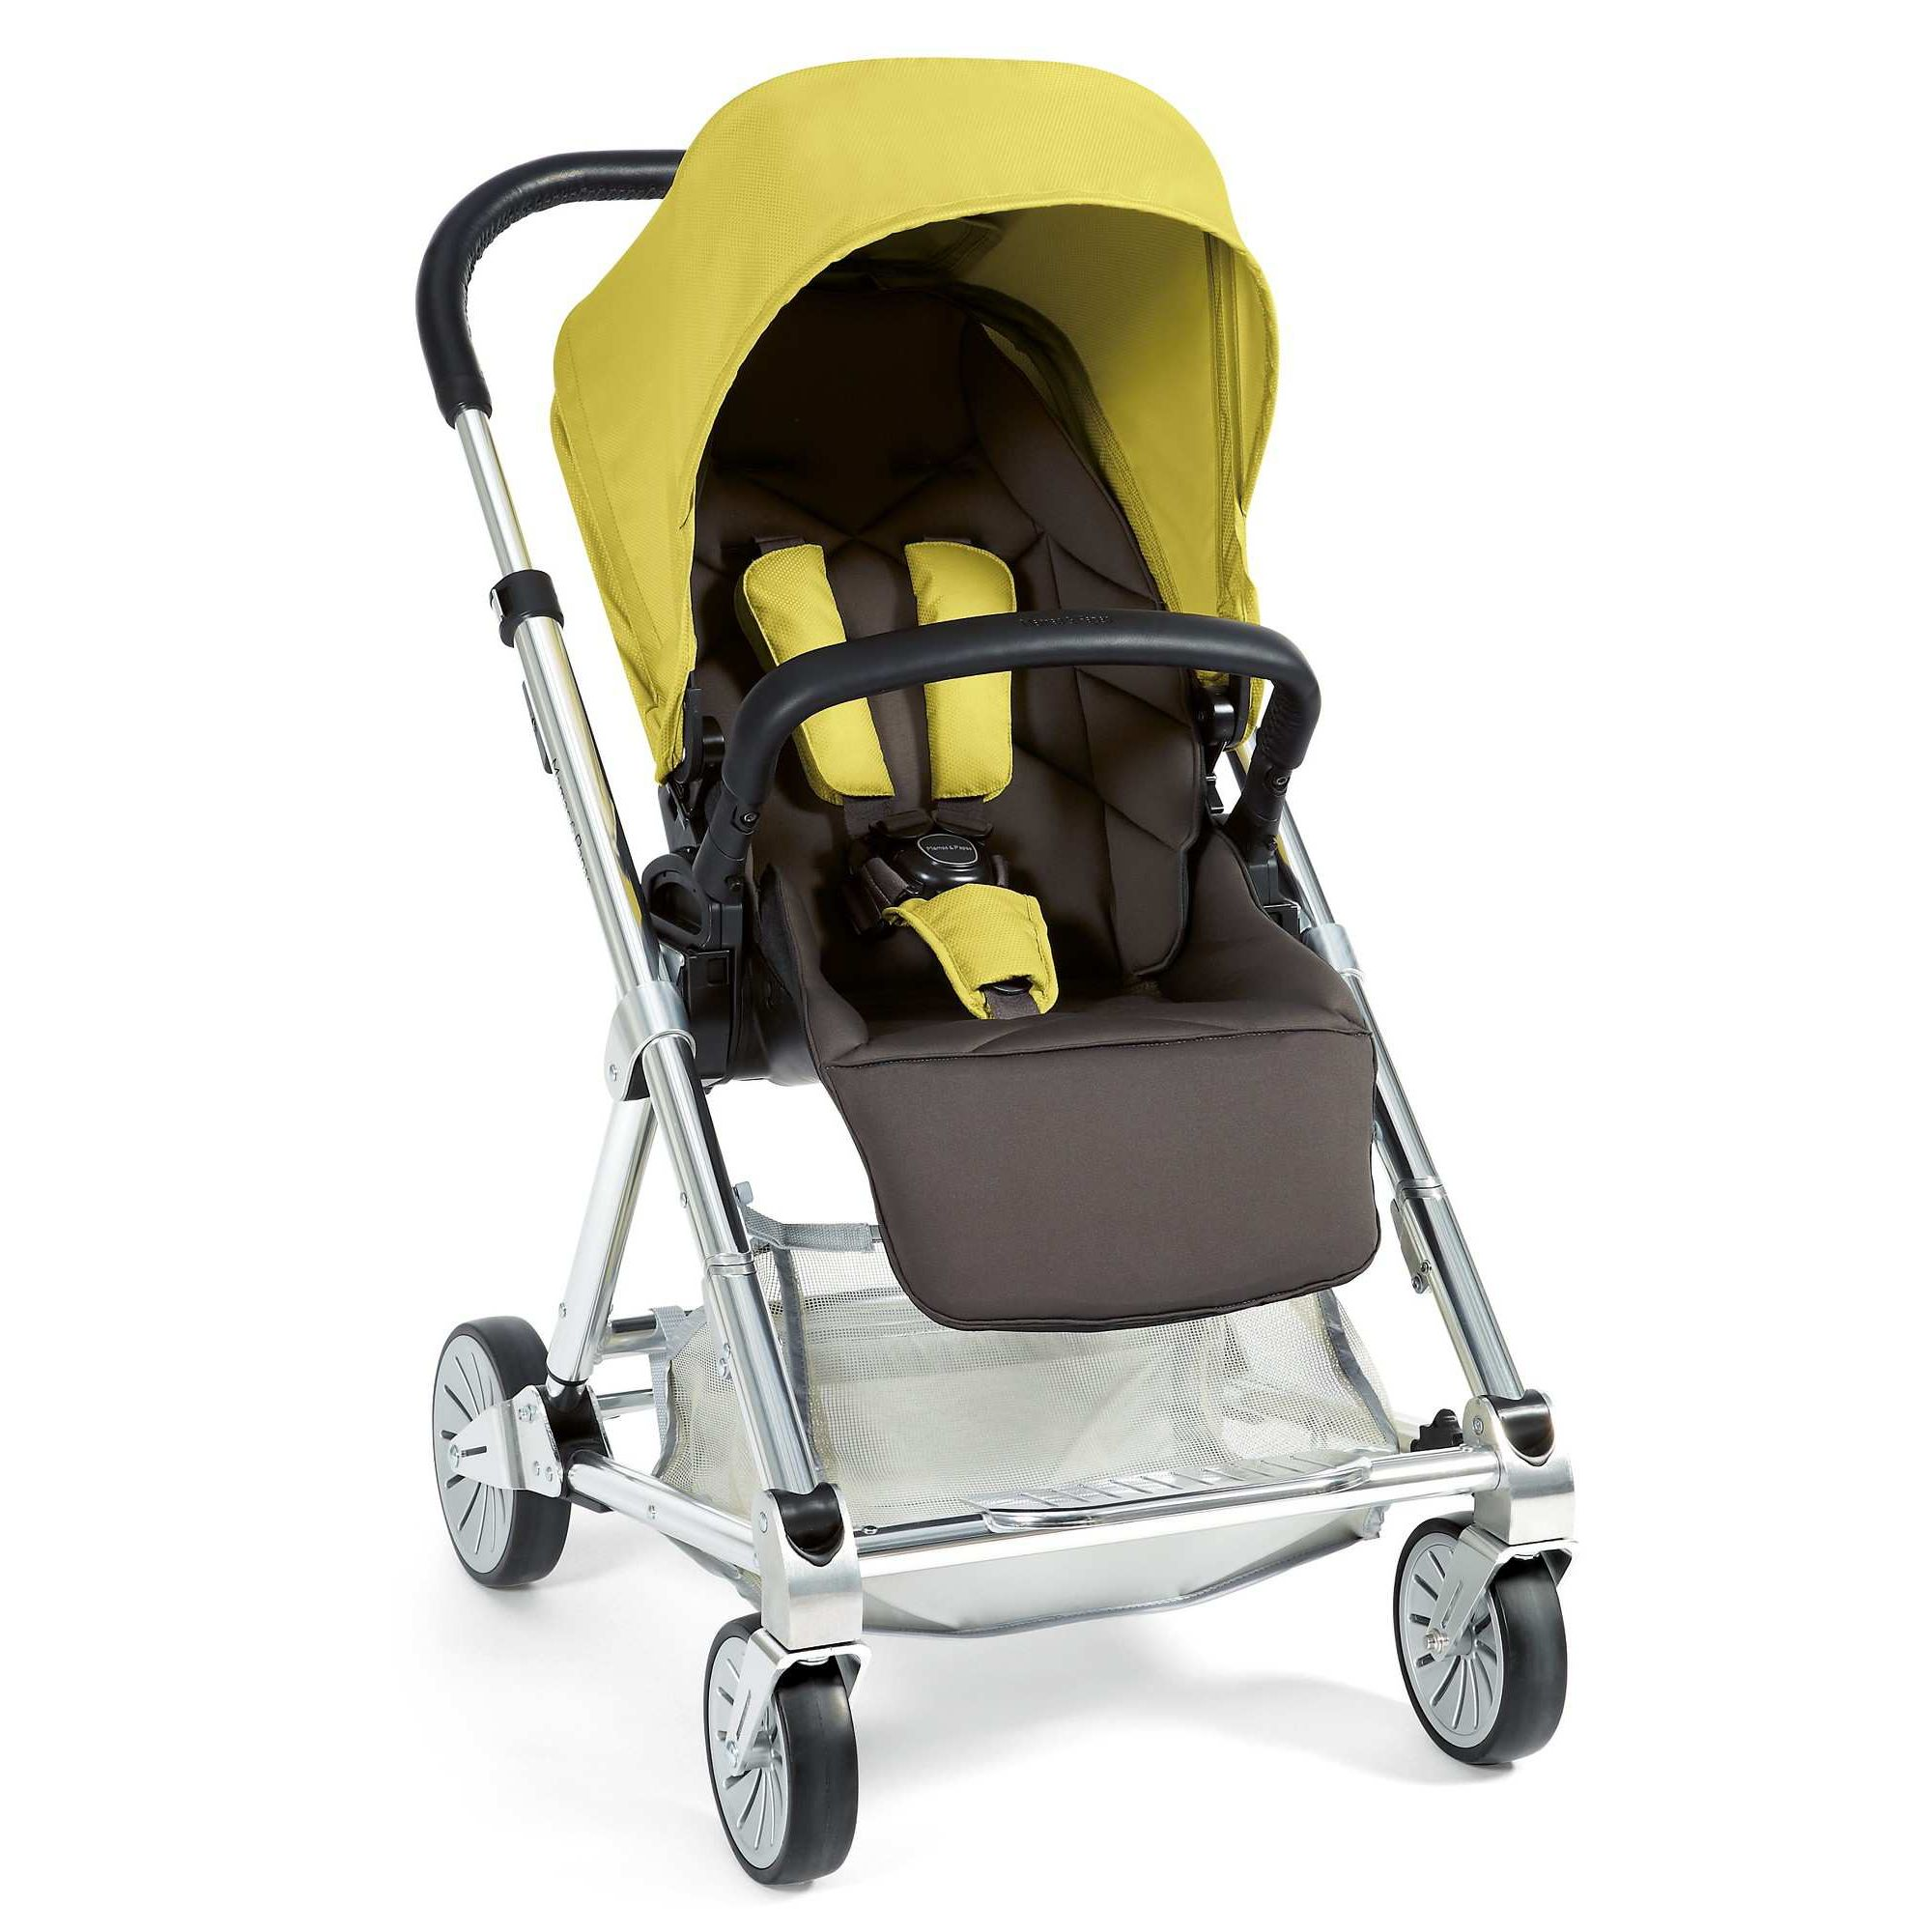 Mamas & Papas - Urbo Pushchair - Lime Jelly at Tesco Direct